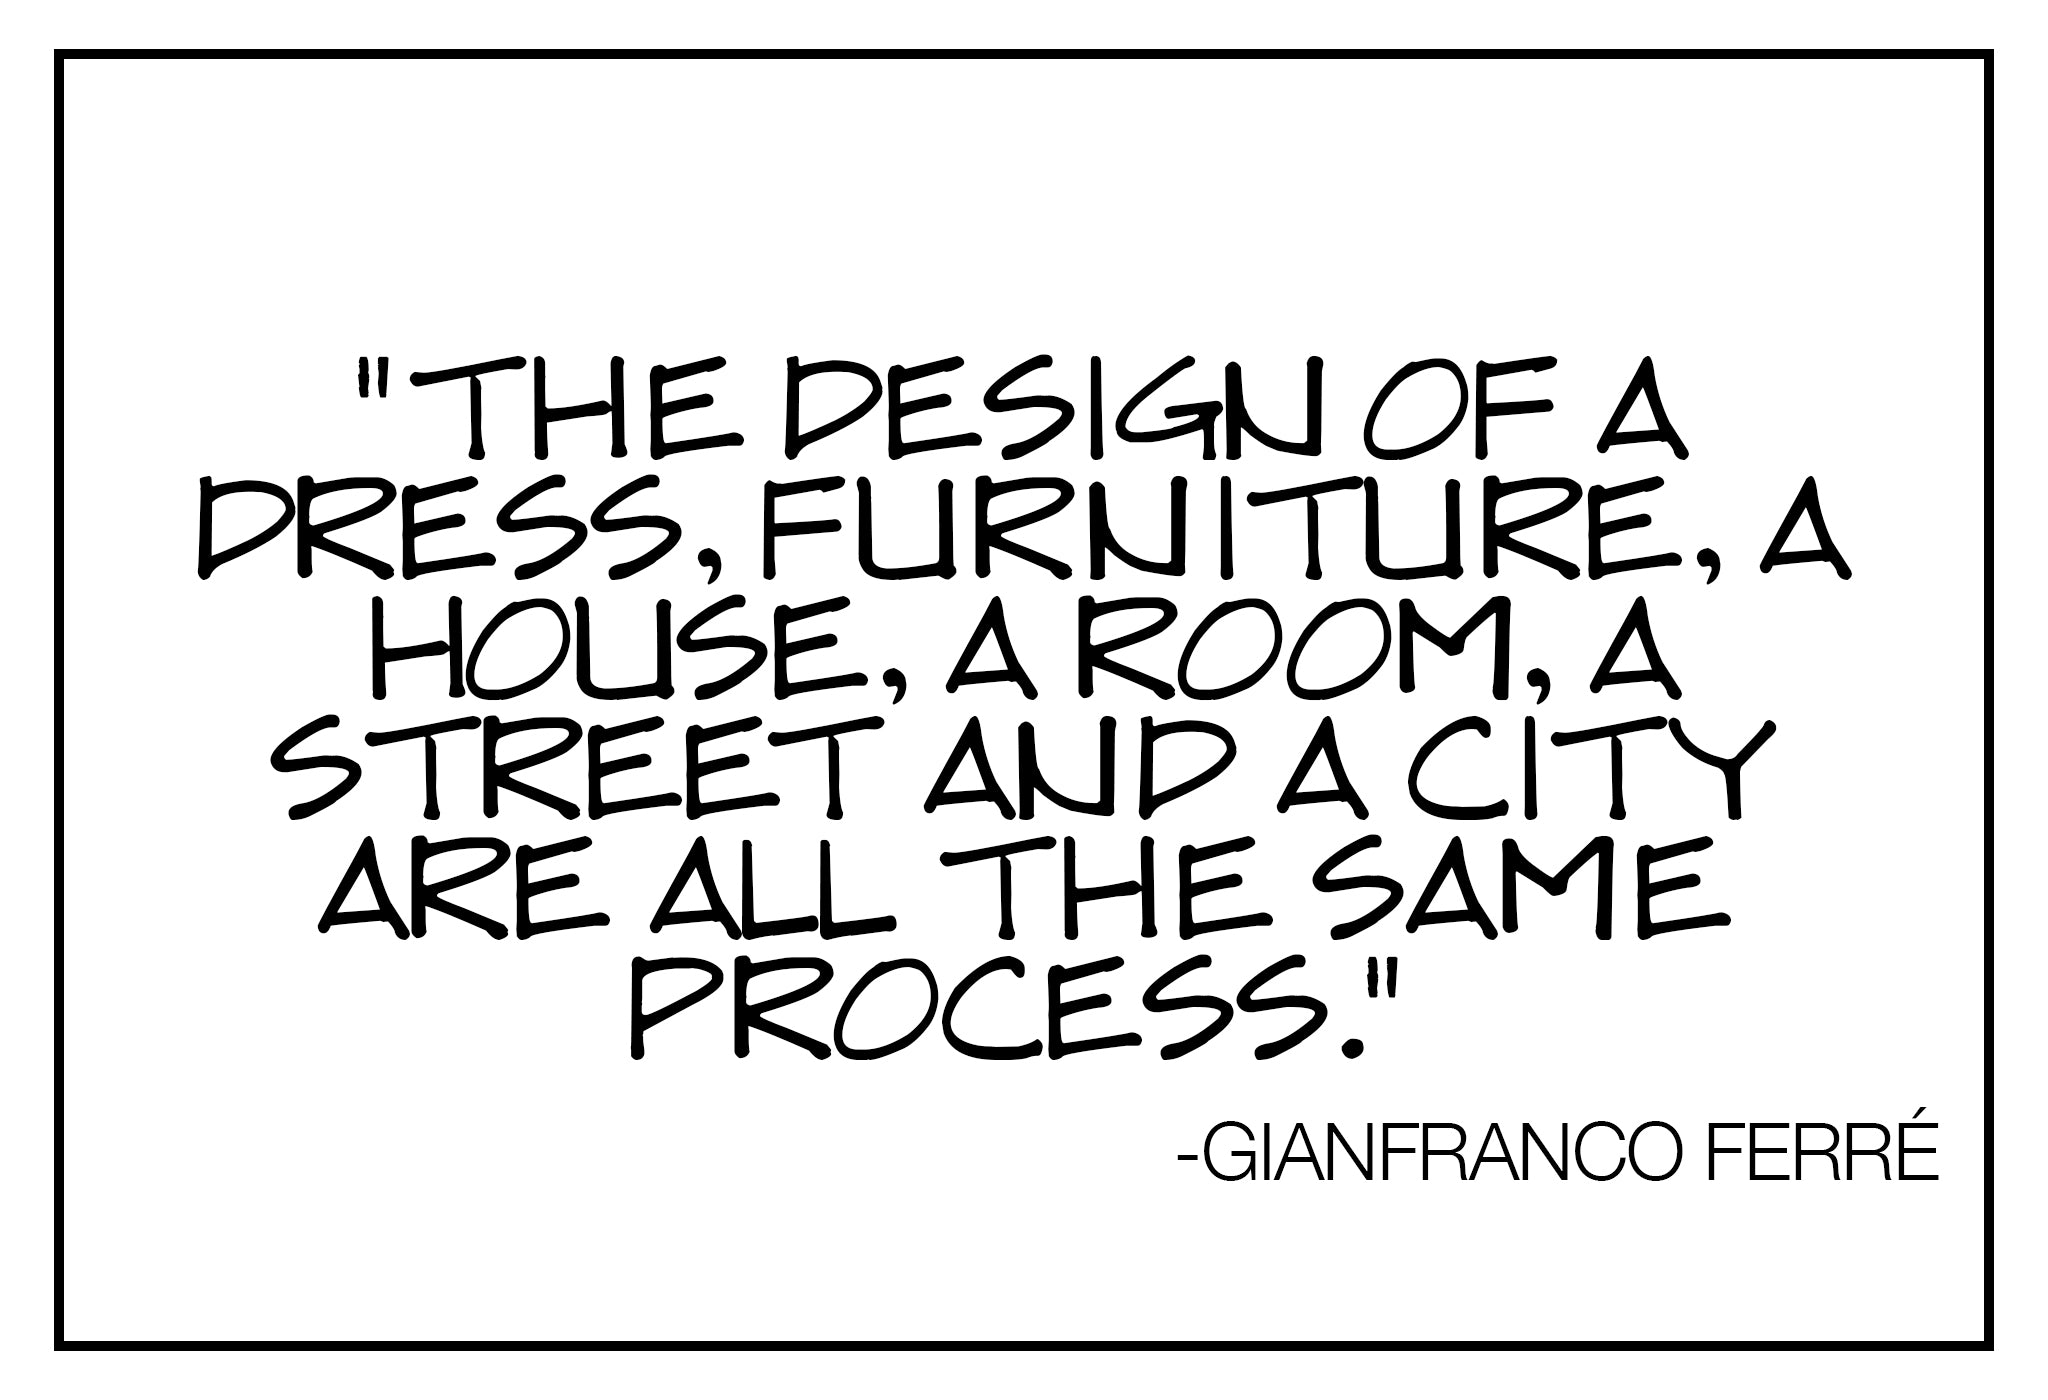 Recess Los Angeles Vintage Gianfranco Ferre Quote Fashion Design Of A Dress House Same Process